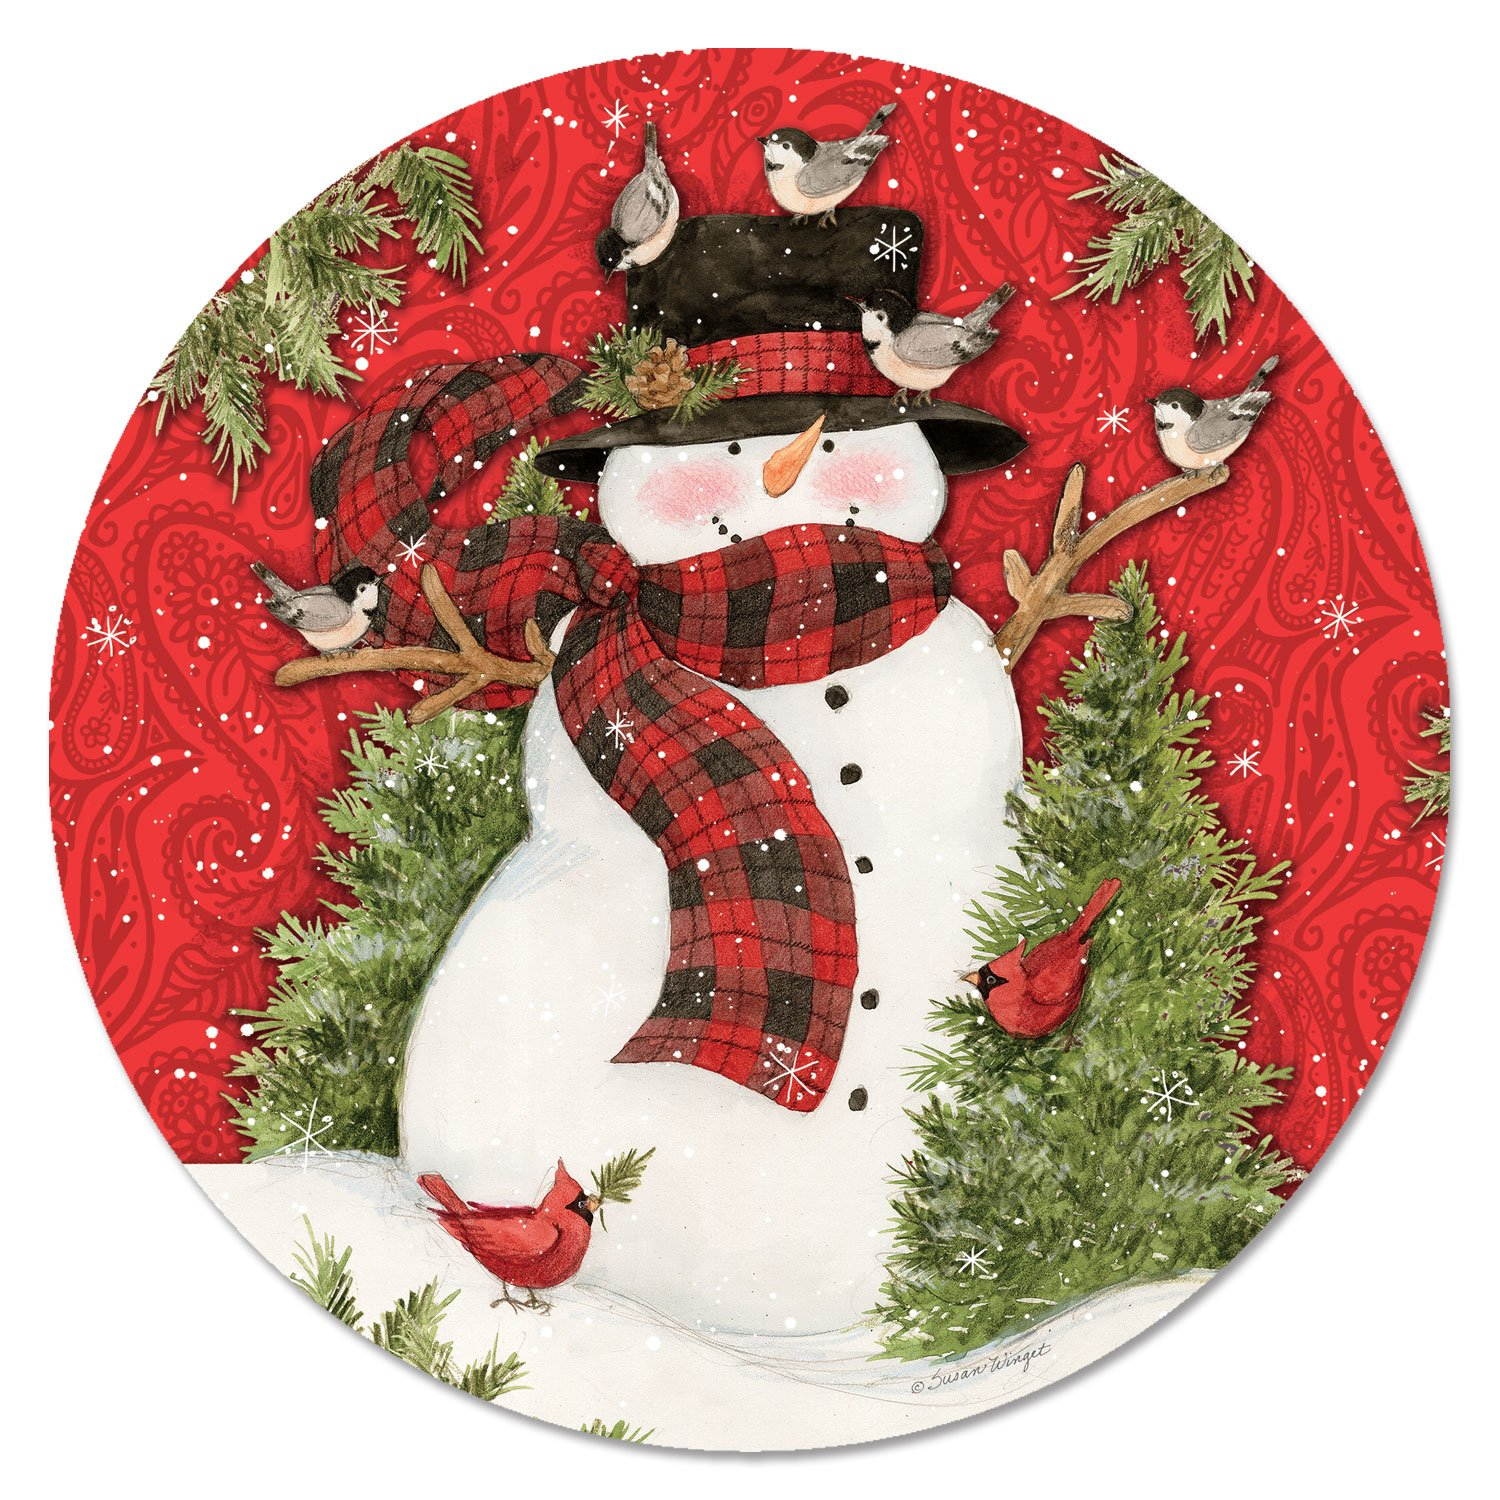 CounterArt 13-Inch Glass Lazy Susan Turntable Serving Plate, Festive Snowman with Birds